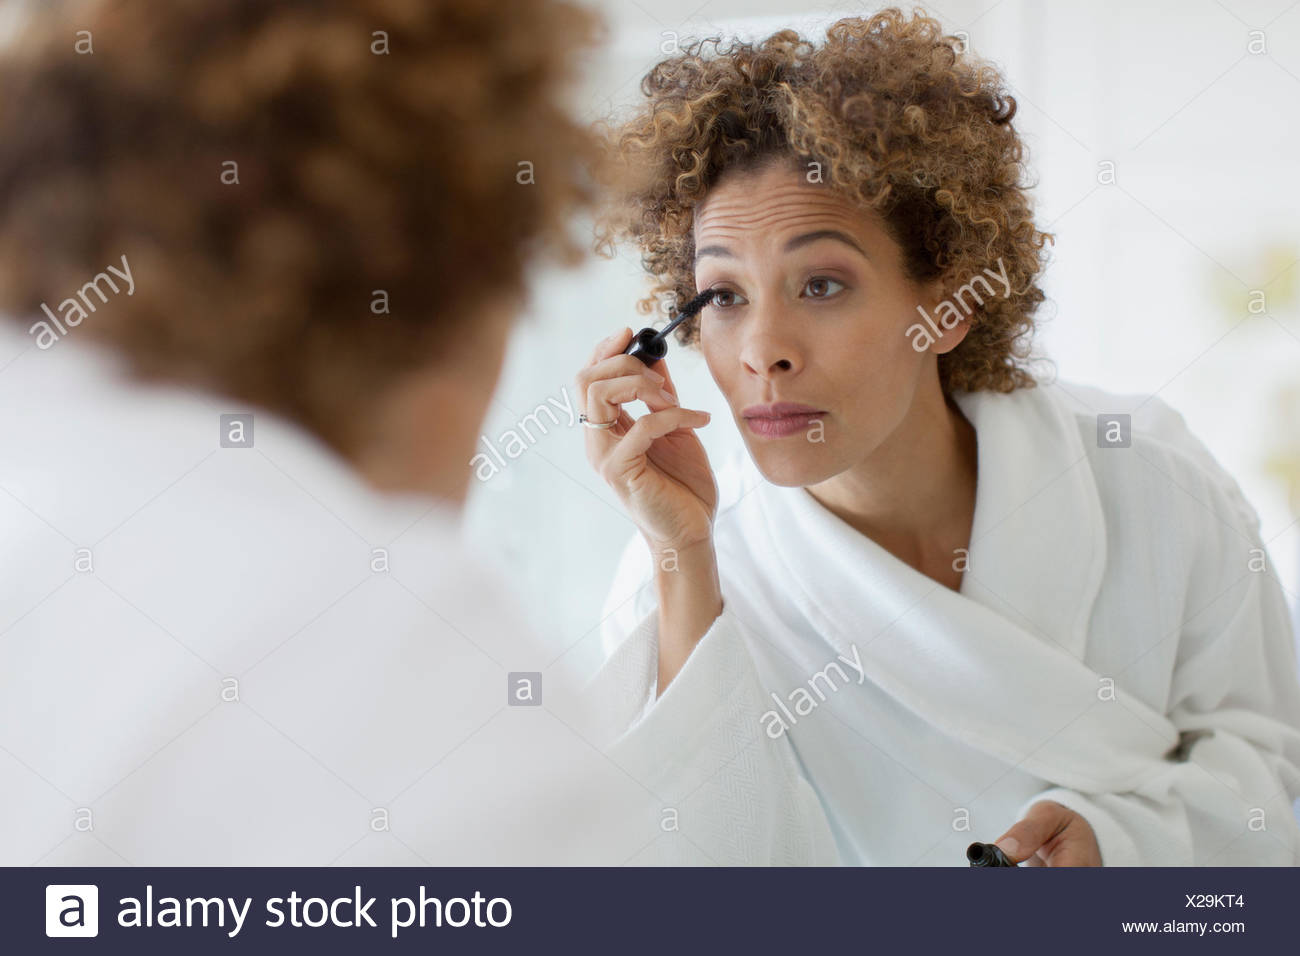 Woman applying make-up in mirror. - Stock Image